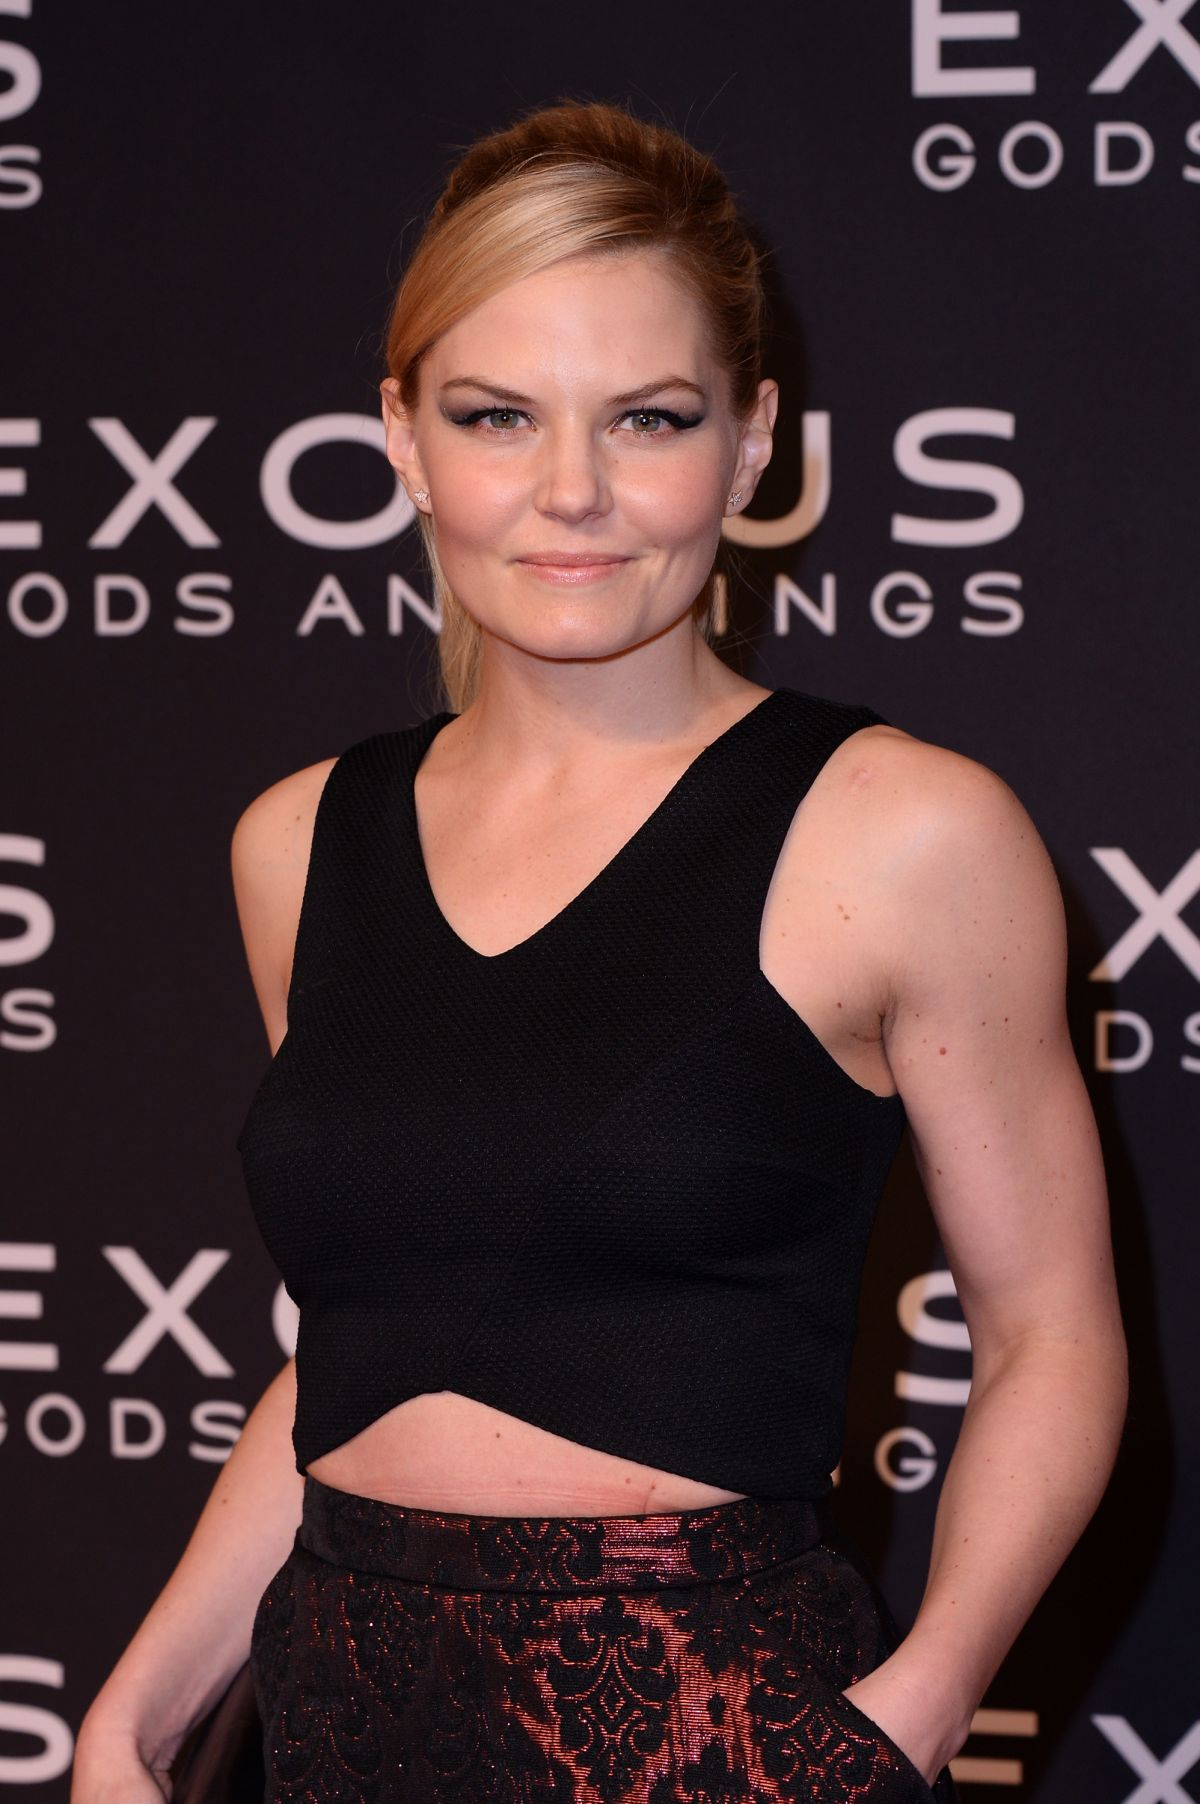 jennifer morrison singingjennifer morrison boyfriend, jennifer morrison wiki, jennifer morrison tumblr, jennifer morrison 2017, jennifer morrison twitter, jennifer morrison arms, jennifer morrison singing, jennifer morrison star trek, jennifer morrison and jesse spencer, jennifer morrison interview, jennifer morrison husband, jennifer morrison tattoo, jennifer morrison eyes, jennifer morrison gif tumblr, jennifer morrison glee, jennifer morrison in red, jennifer morrison red dress, jennifer morrison facebook, jennifer morrison википедия, jennifer morrison brazil